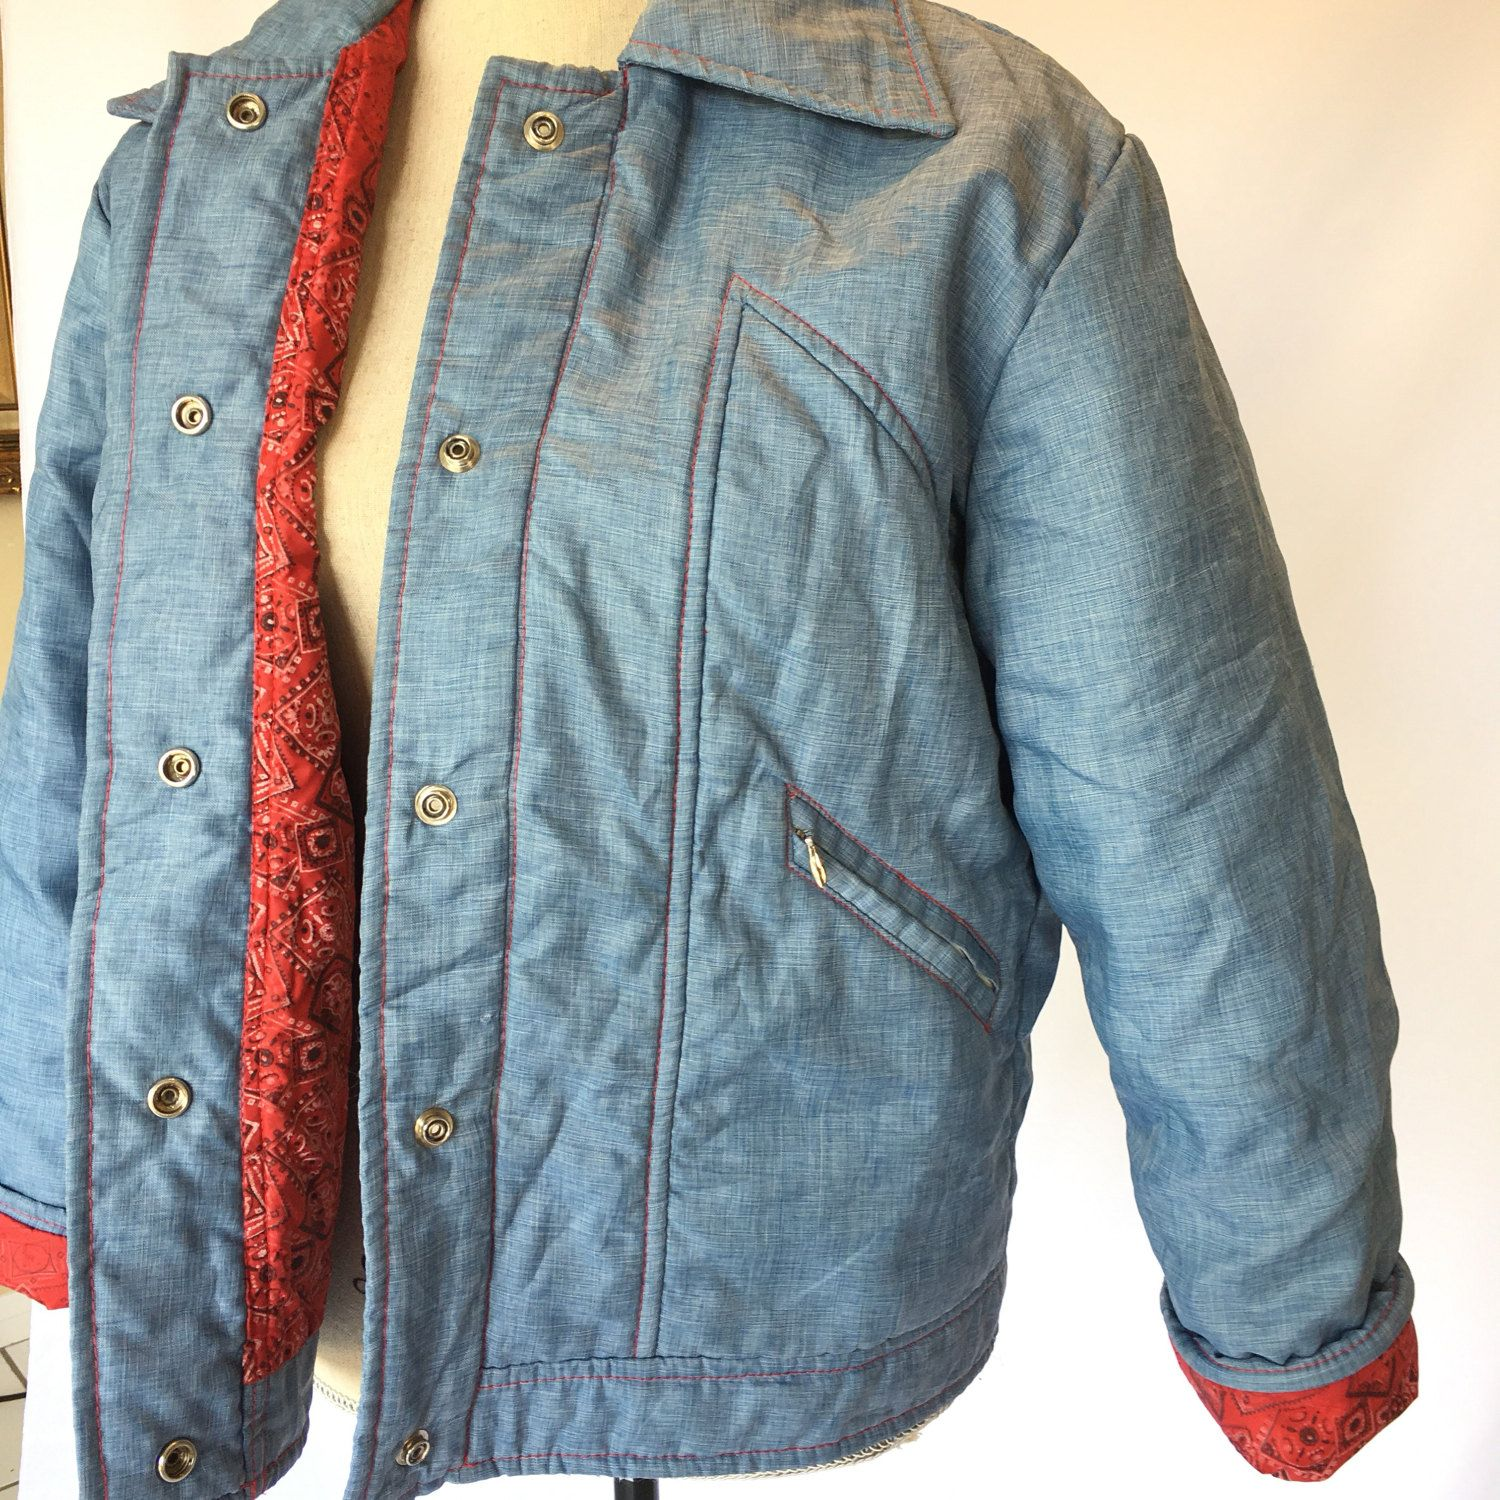 Chambray bandana reversible jacket puffy mens womens vintage red denim jean windbreaker ringer heavy red stitching pockets large XL sale rad by VELVETMETALVINTAGE on Etsy